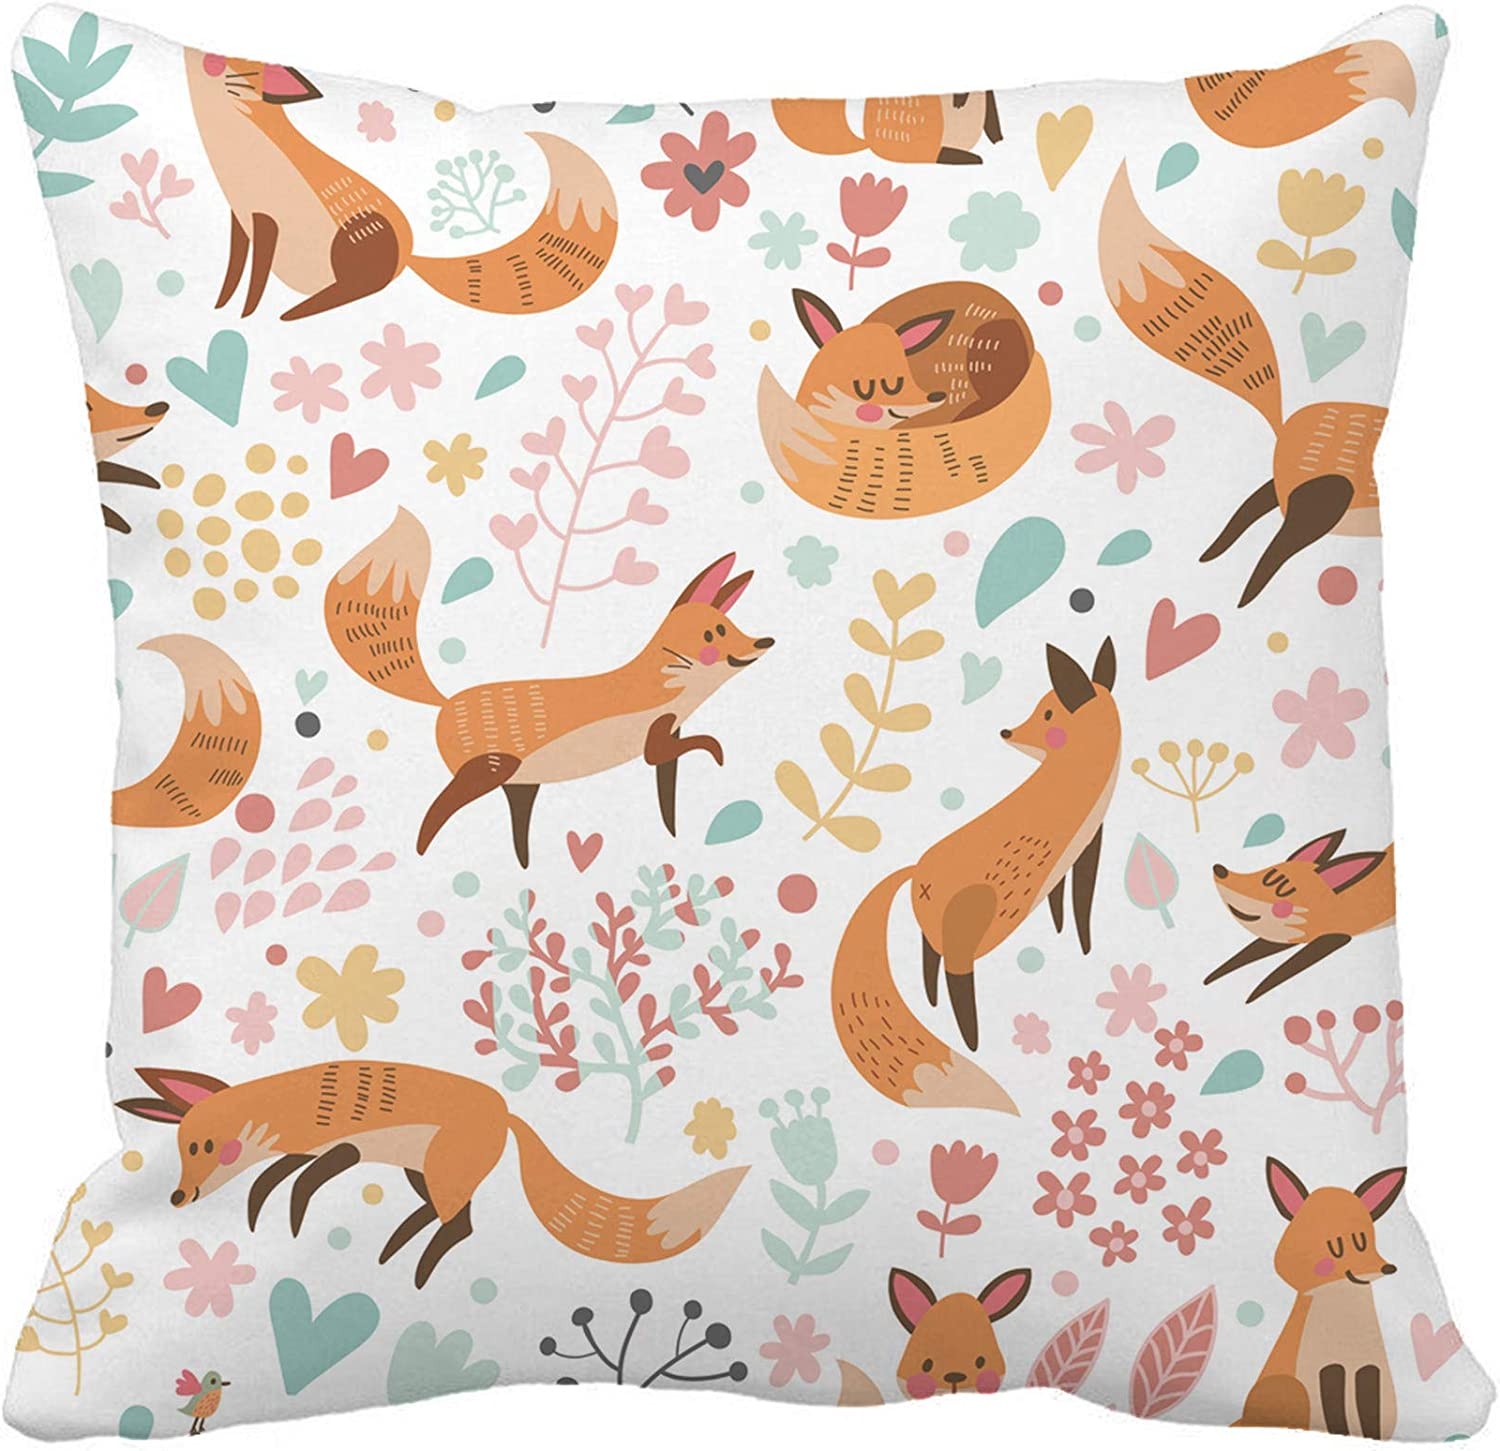 rouihot 18x18 Inch Throw Pillow Cover with Cute Foxes and Flowers Awesome in Bright Colors in Home Decor Pillowcase Square Pillow Case Cushion Cover for Sofa Bed